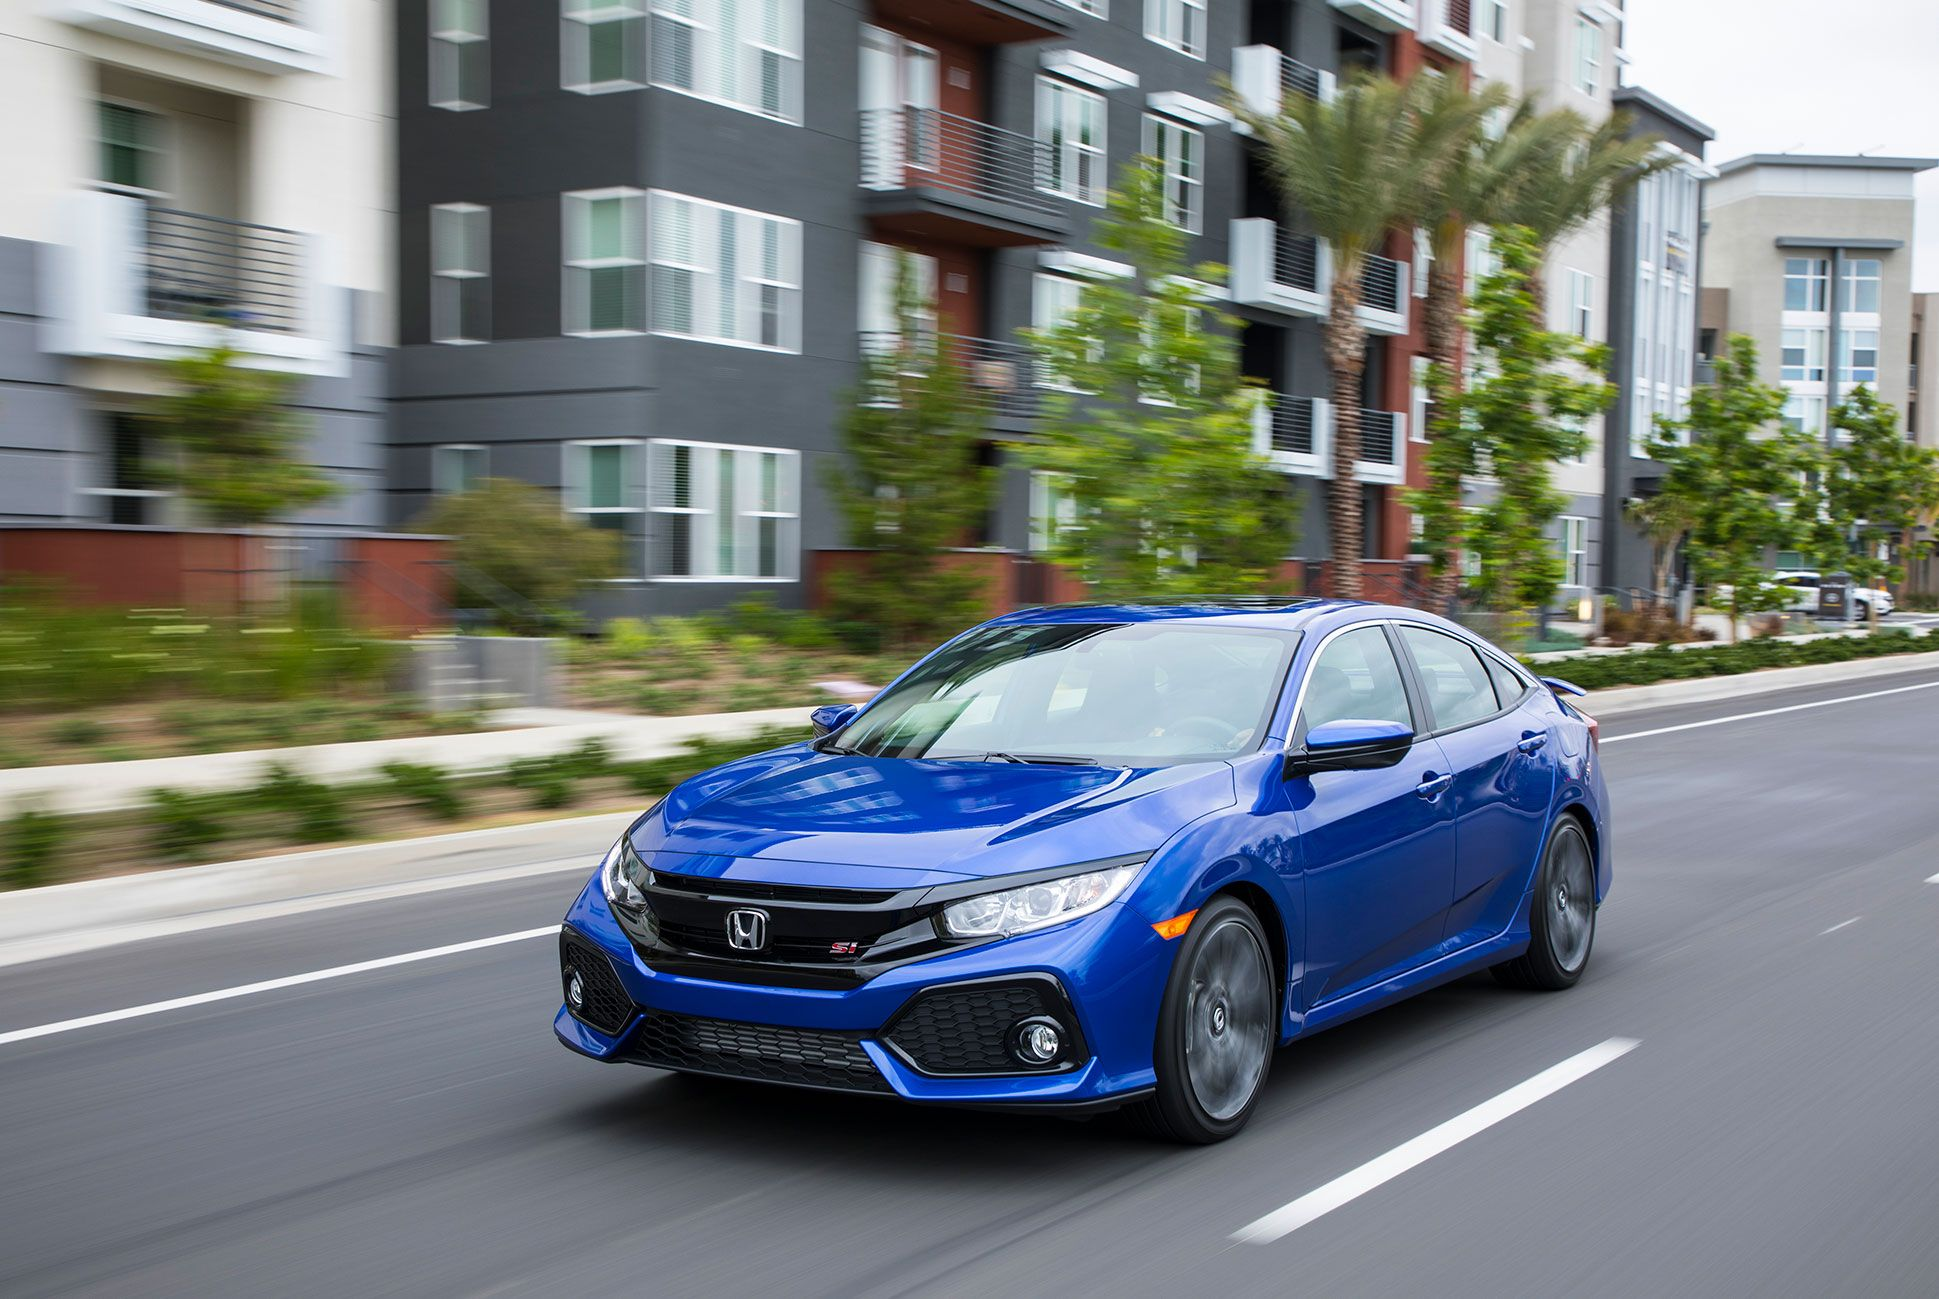 Civic-SI-Gear-Patrol-Slide-7